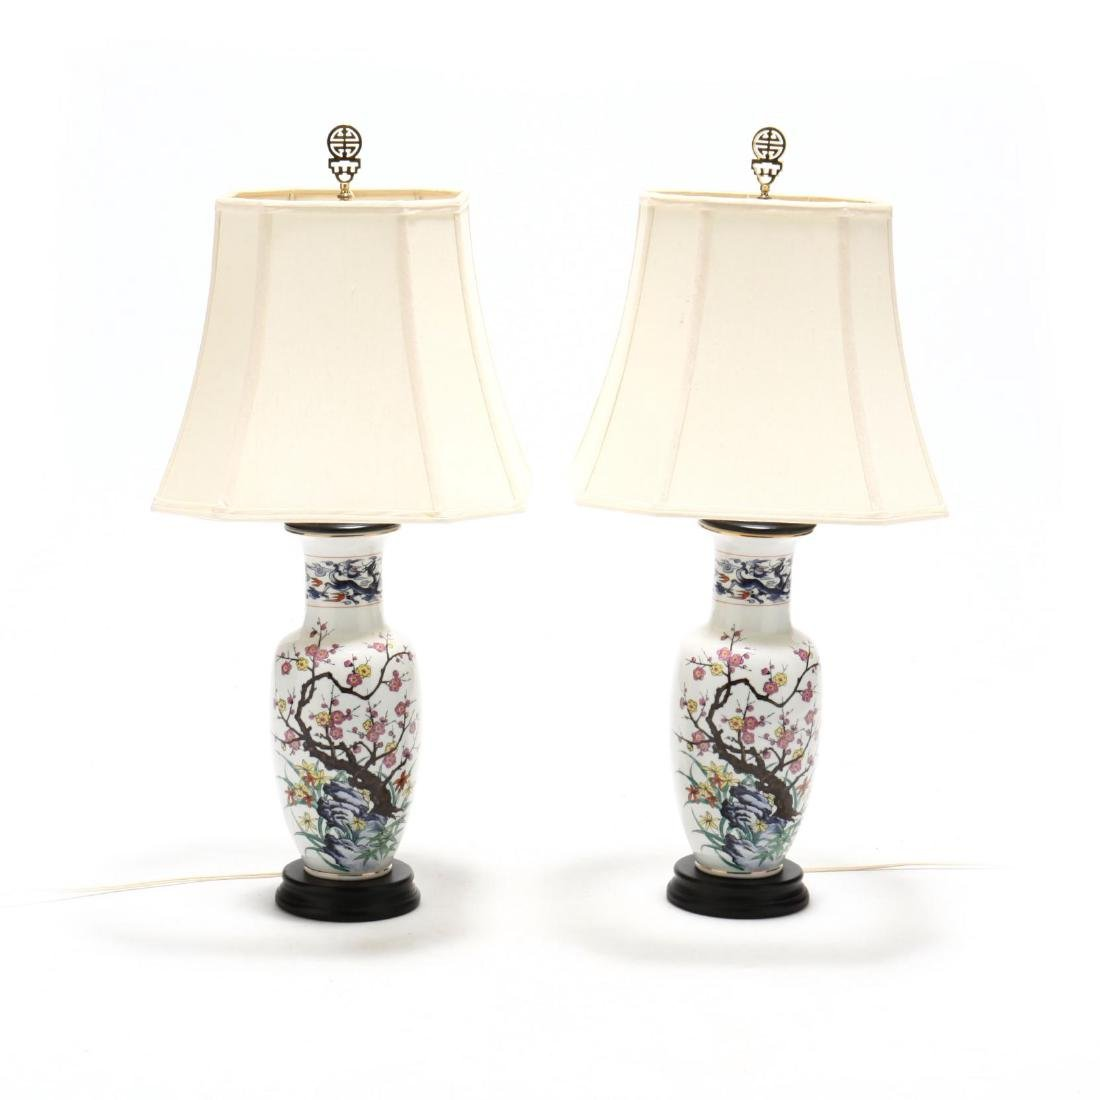 Pair of Chinese Export Style Porcelain Table Lamps